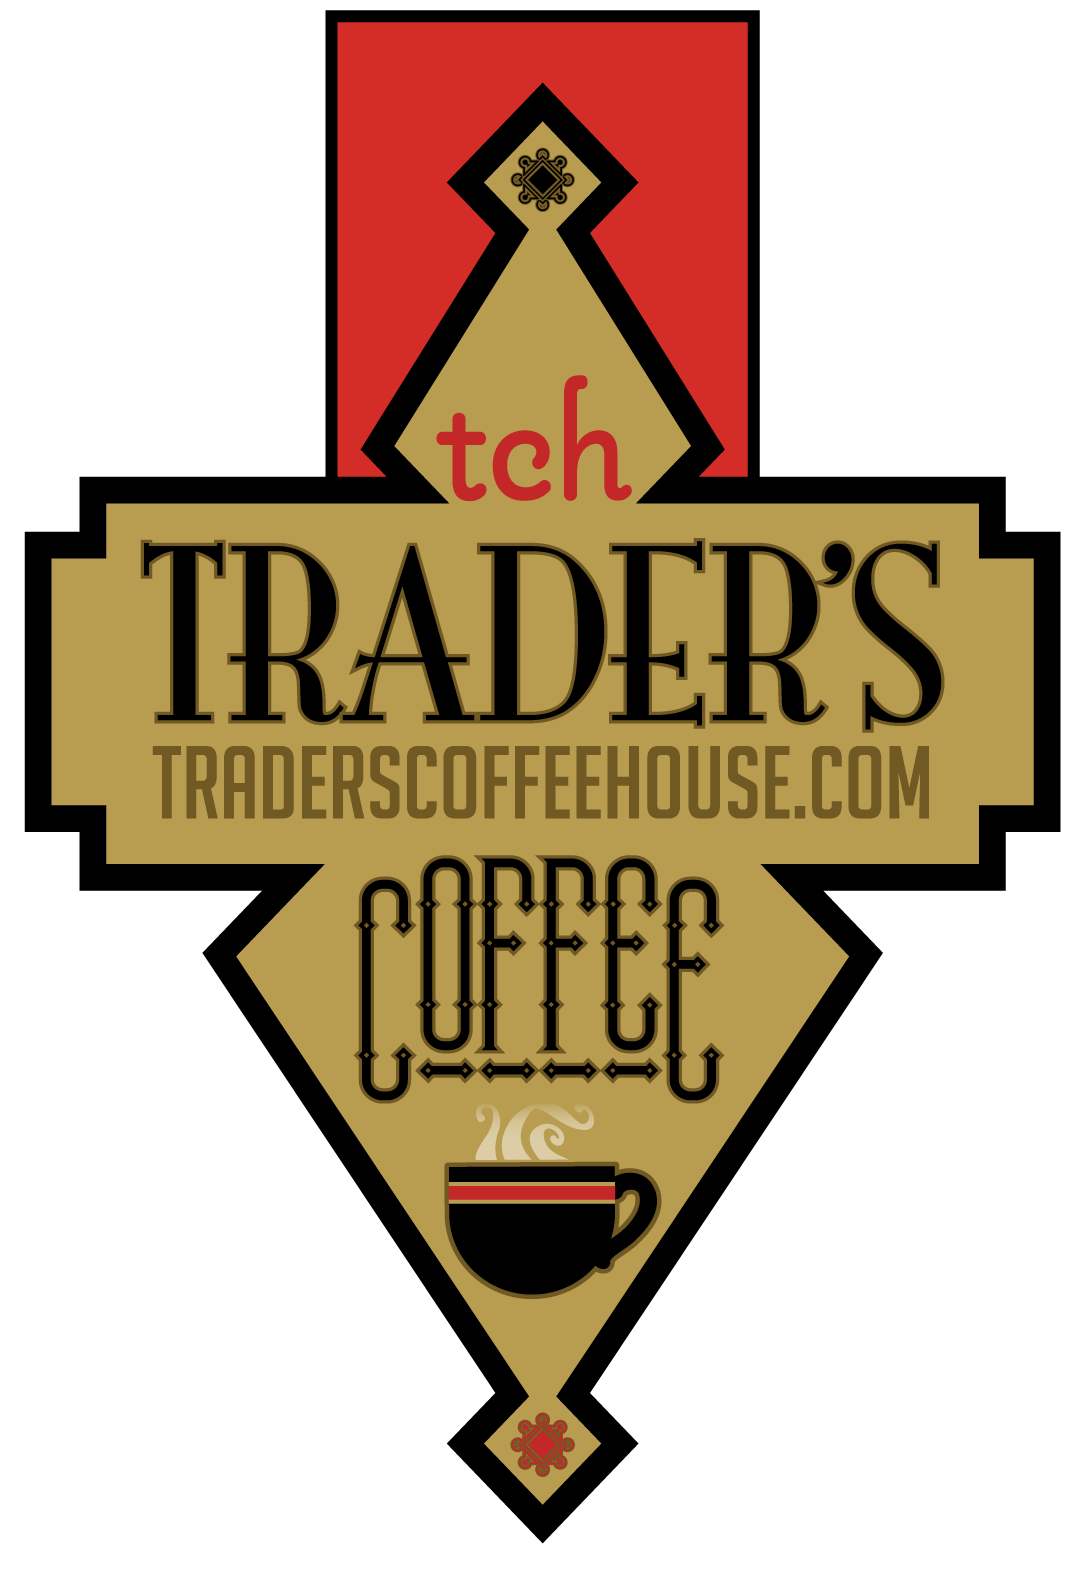 This shows where the TRADER'S COFFEE is located!